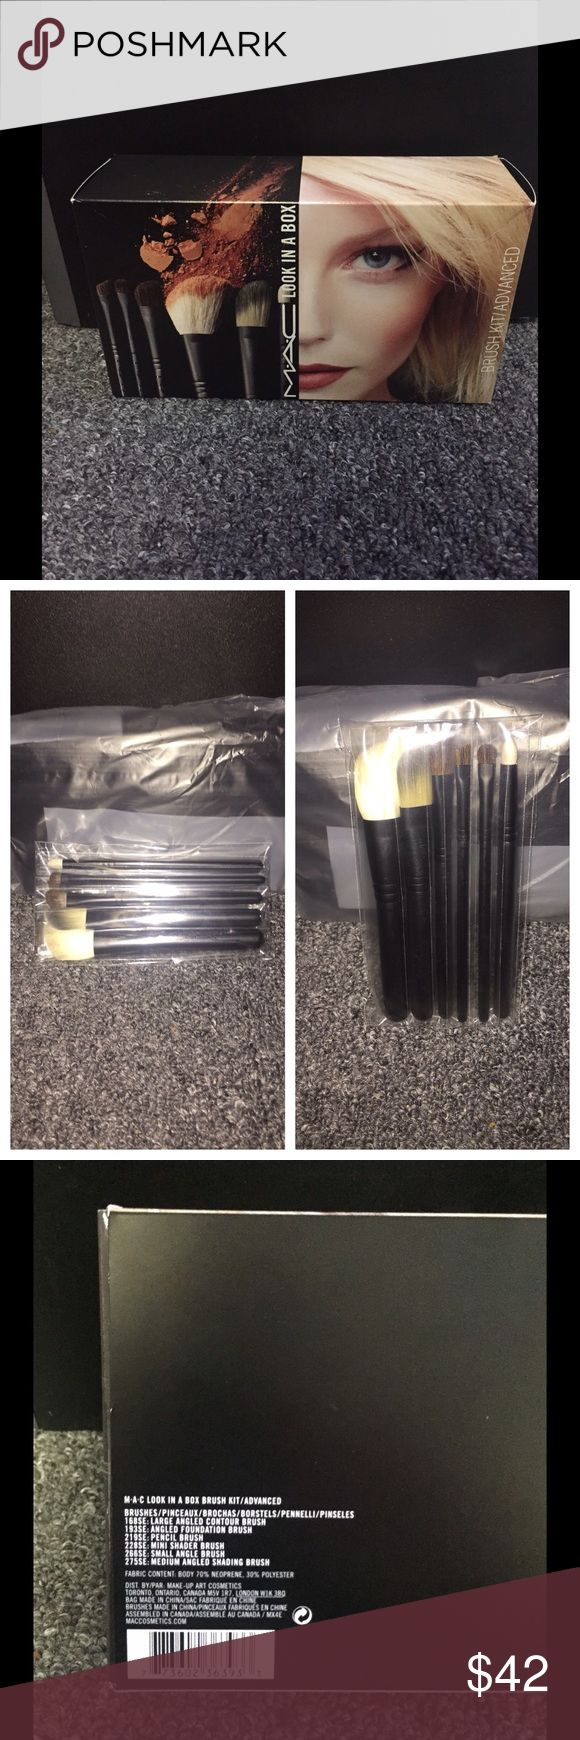 MAC Look in a Box Brush Kit Advanced Contour Eyes Brand NEW & SEALED in box!!! Only opened box to take pics; did not remove from plastic. No flaws or defects. 100% Authentic! Kit includes 6 travel size make-up brushes and travel pouch case. *Last pic shows exactly what you will receive.* MAC Cosmetics Makeup Brushes & Tools